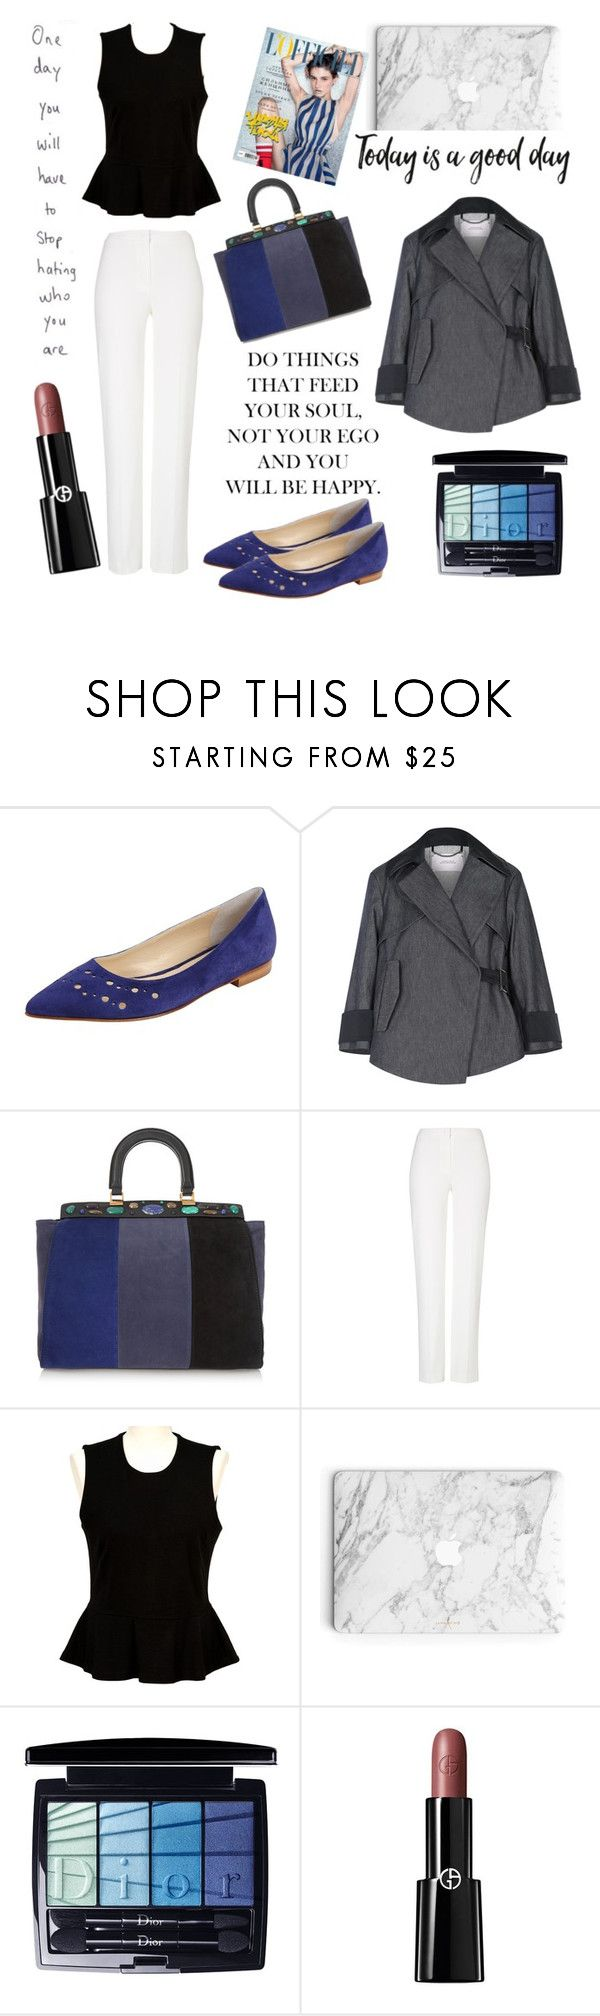 """Untitled #91"" by coffeegirl233 ❤ liked on Polyvore featuring Butter Shoes, Dorothee Schumacher, Tory Burch, ESCADA, French Connection, Christian Dior and Giorgio Armani"